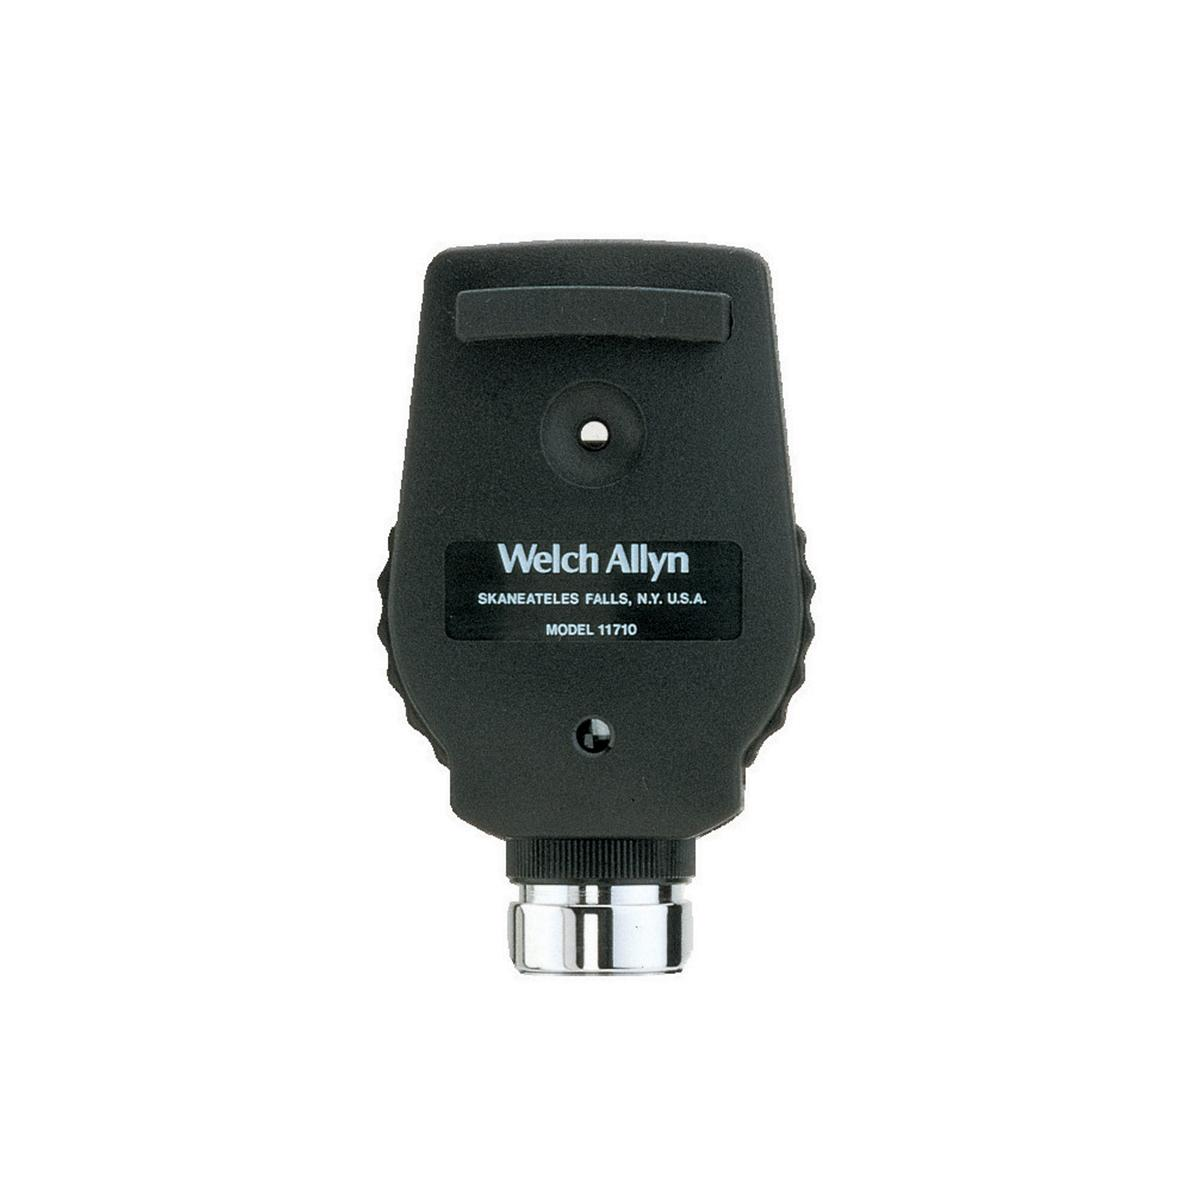 Clinician-side view of a Welch Allyn 3.5V Standard Ophthalmoscope, showing its comfortable brow rest and viewing window.